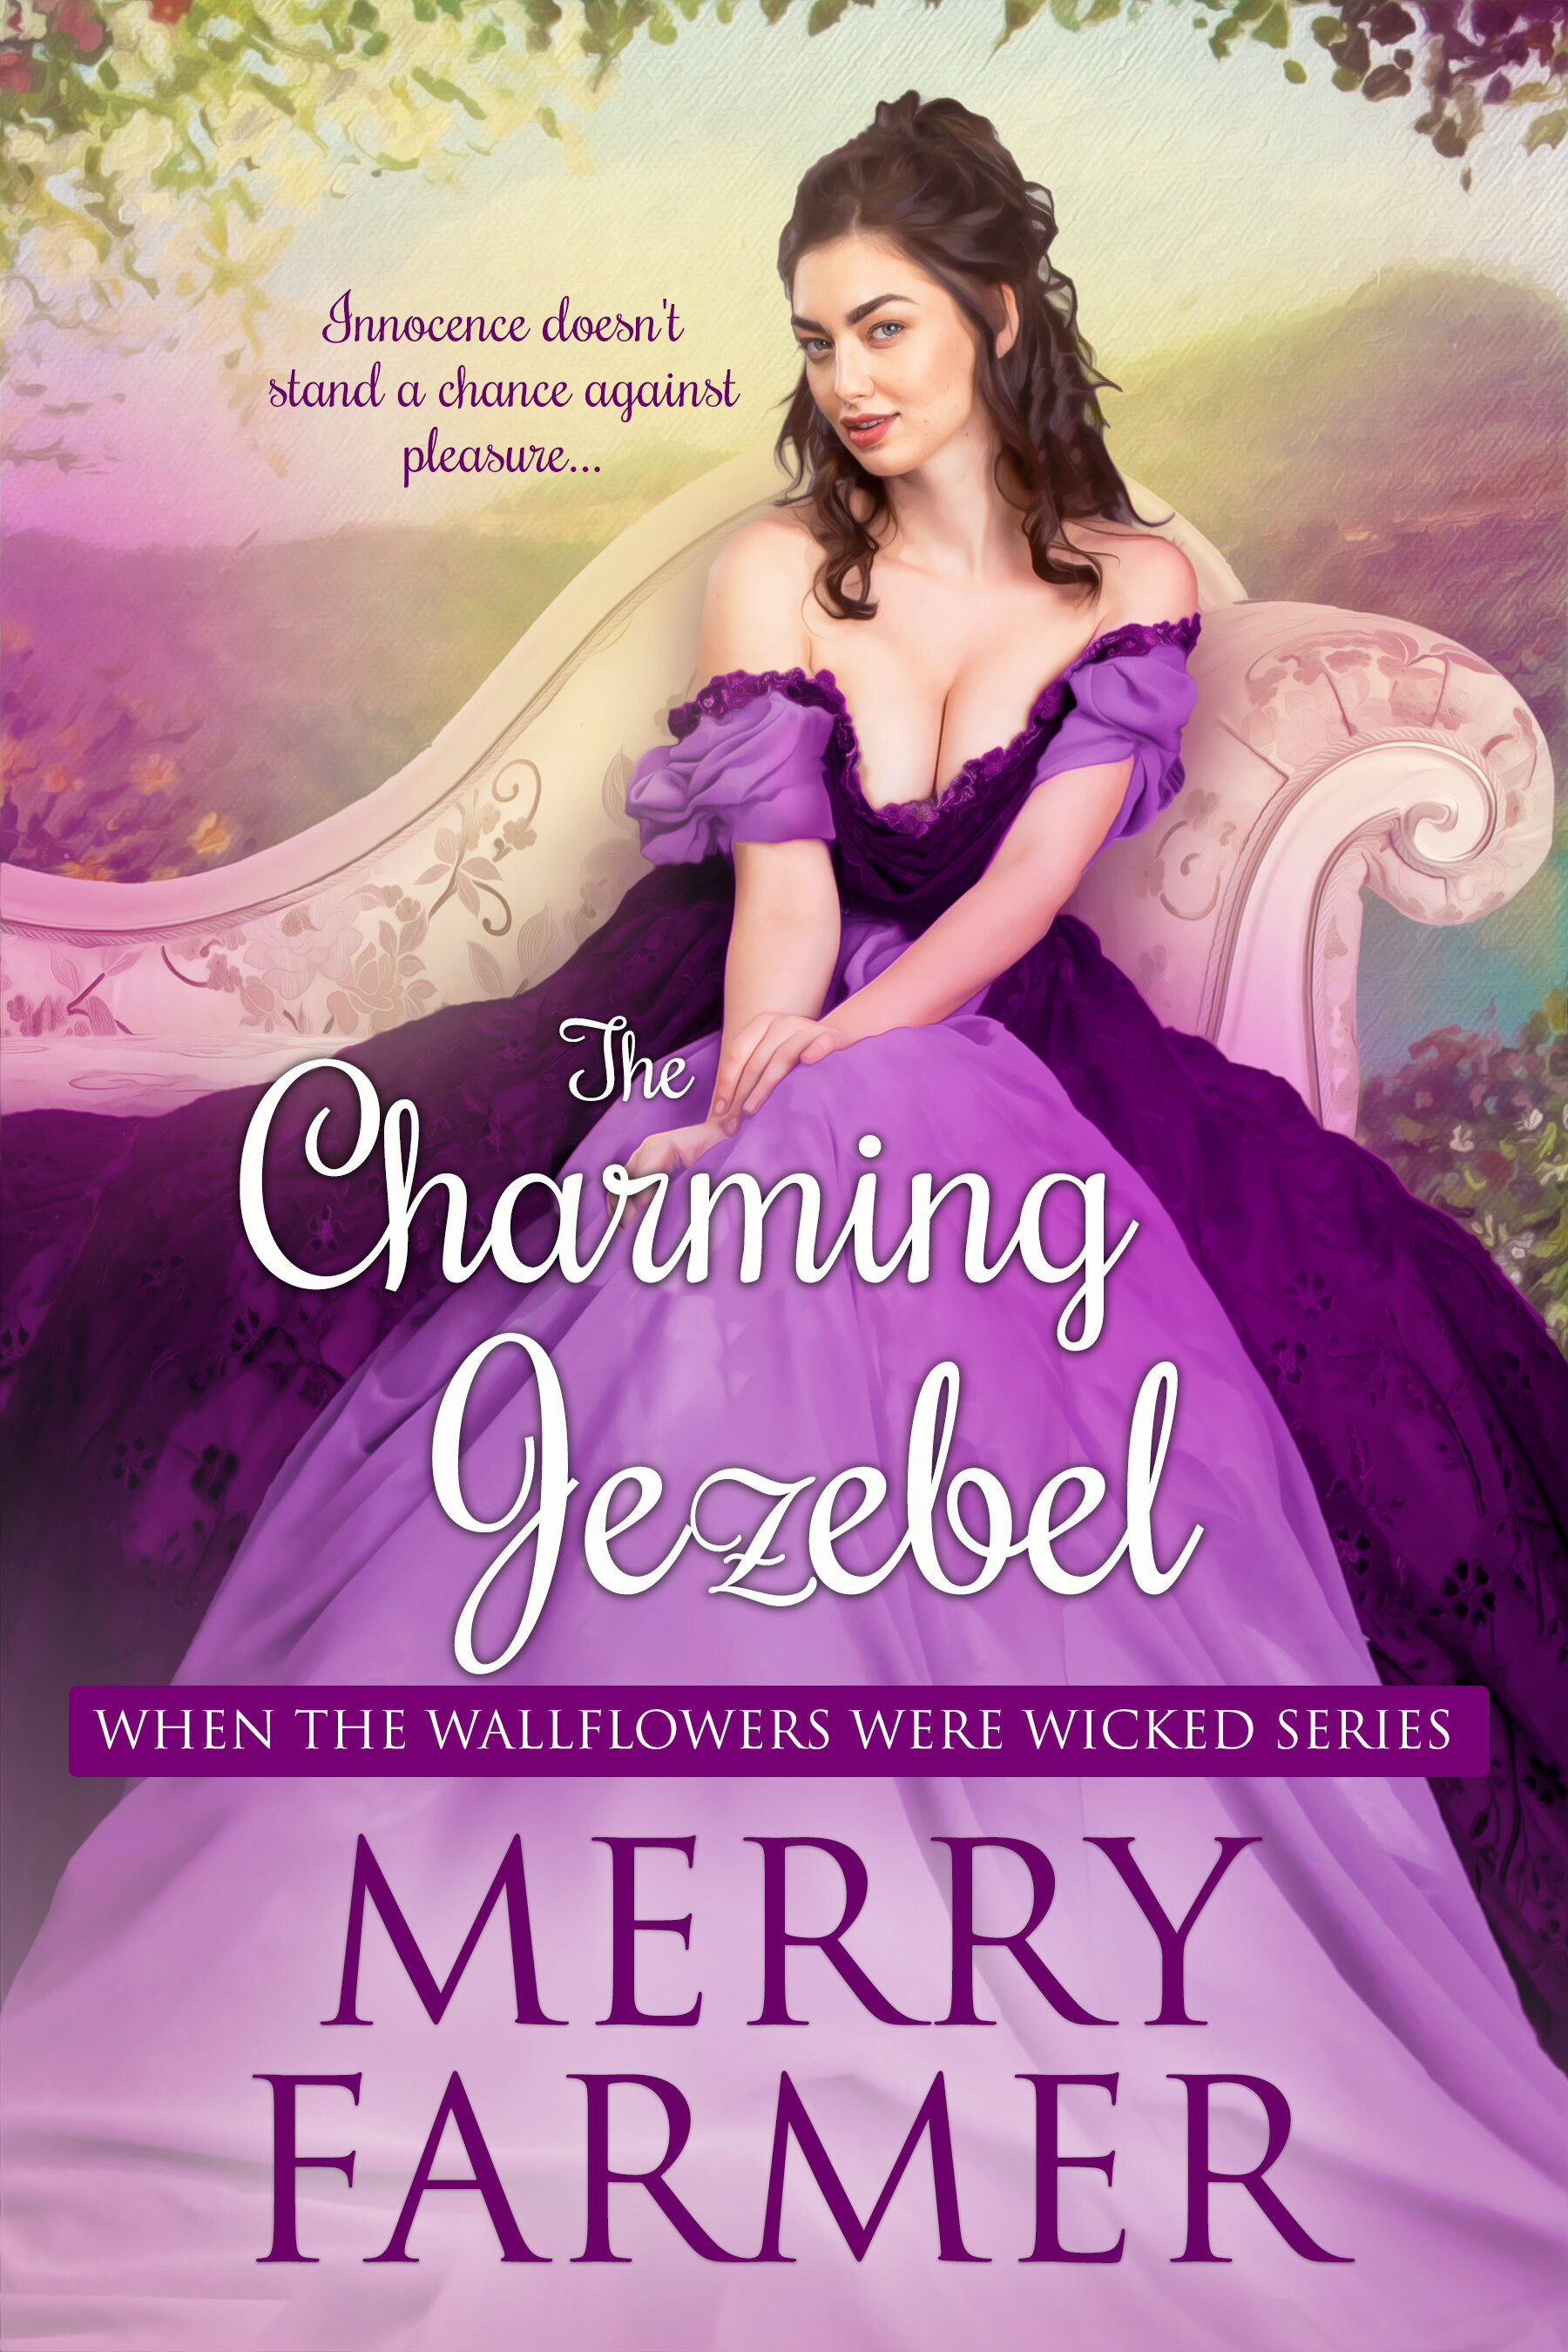 The Charming Jezebel (Book Nine) - Innocence doesn't stand a chance against pleasure….Lady Ophelia Binghamton has been the definition of a wallflower her entire life. She has always paled in comparison to her livelier friends in all of their adventures. So how can her Aunt Millicent possibly expect her to catch the eye of a suitable gentleman with marriage on her mind? She is much more content to search Hadnall Heath for the lock that fits the mysterious key she discovered at the beginning of the summer house party. And to rescue the Marlowe sisters from a fate worse than death, of course.Prince Saif Khan joined his friends at the infamous house party solely for the purpose of pleasure, but the moment he meets Lady Ophelia, his heart is in serious danger of something much more serious than fun. And when Ophelia appeals to him to help the Marlowe sisters escape from their horrible father and even more horrible suitors, he commits himself to the mission with enthusiasm.But can an Englishwoman and an Indian raja's son find true happiness? Or will fate keep them apart?PLEASE BE ADVISED – Steam Level: Five-Alarm Fire with a few F-bombs. Don't say you weren't warned.